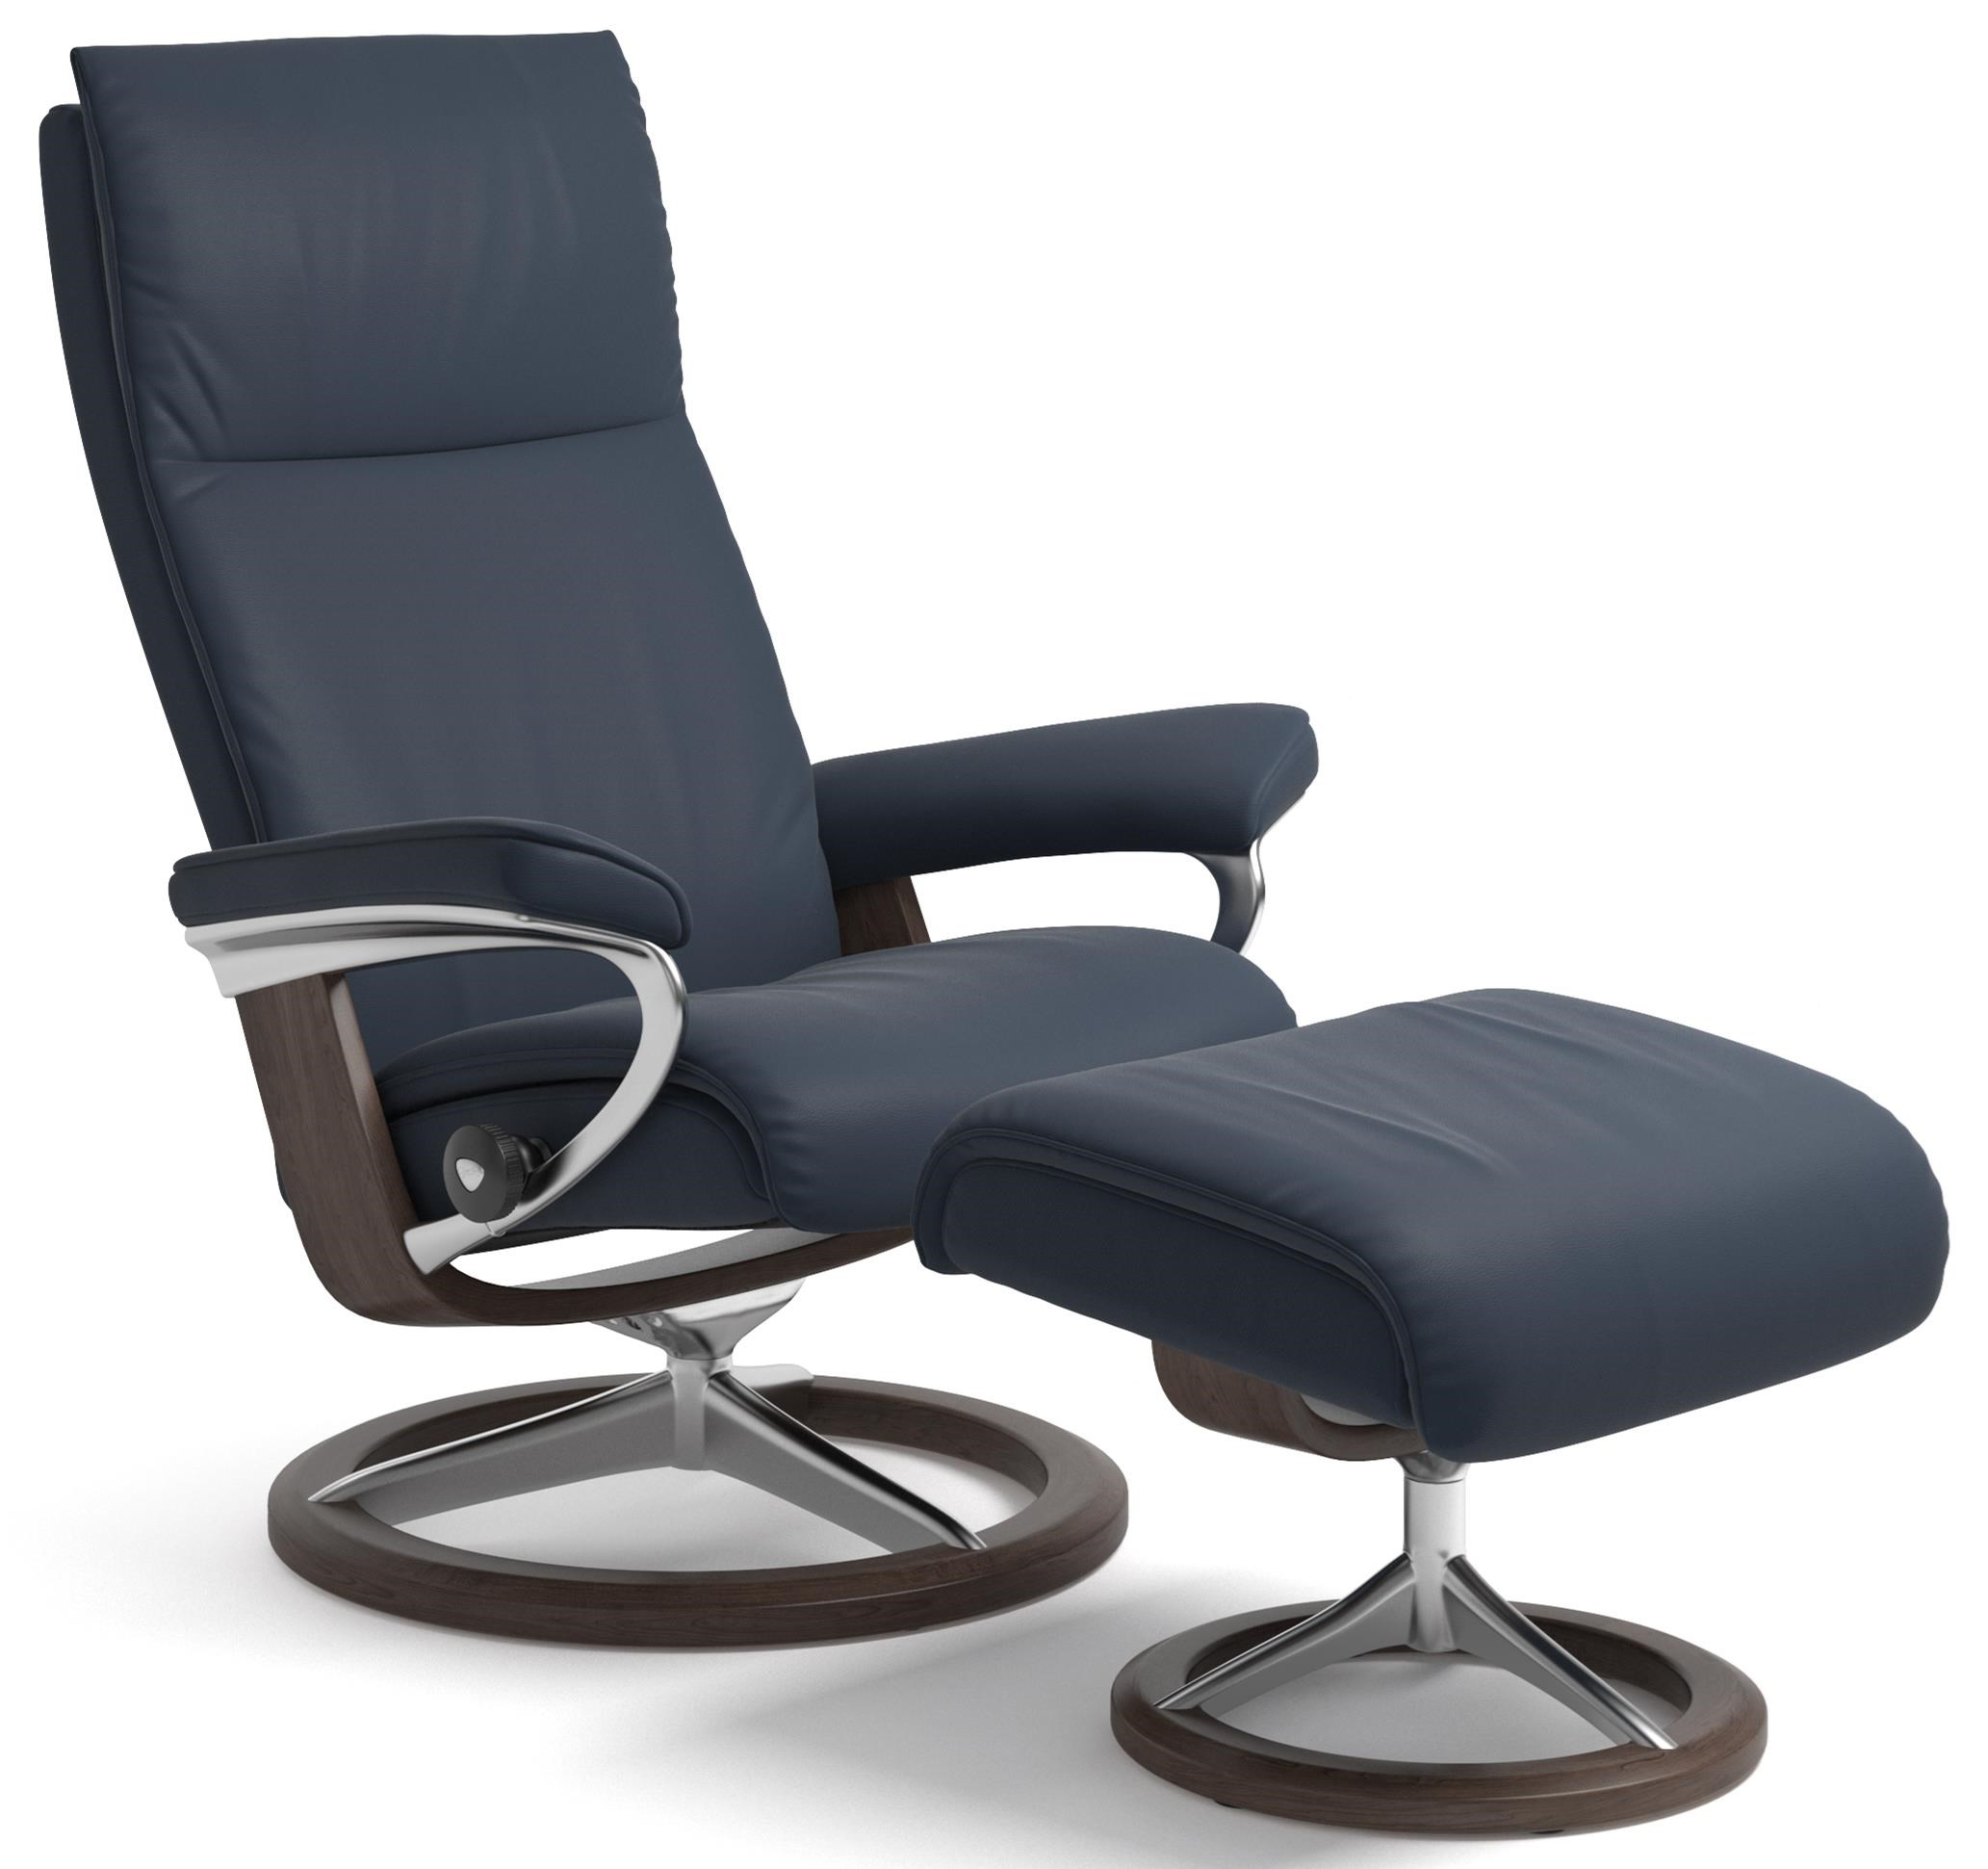 Aura Small Reclining Chair and Ottoman by Stressless at Gill Brothers Furniture